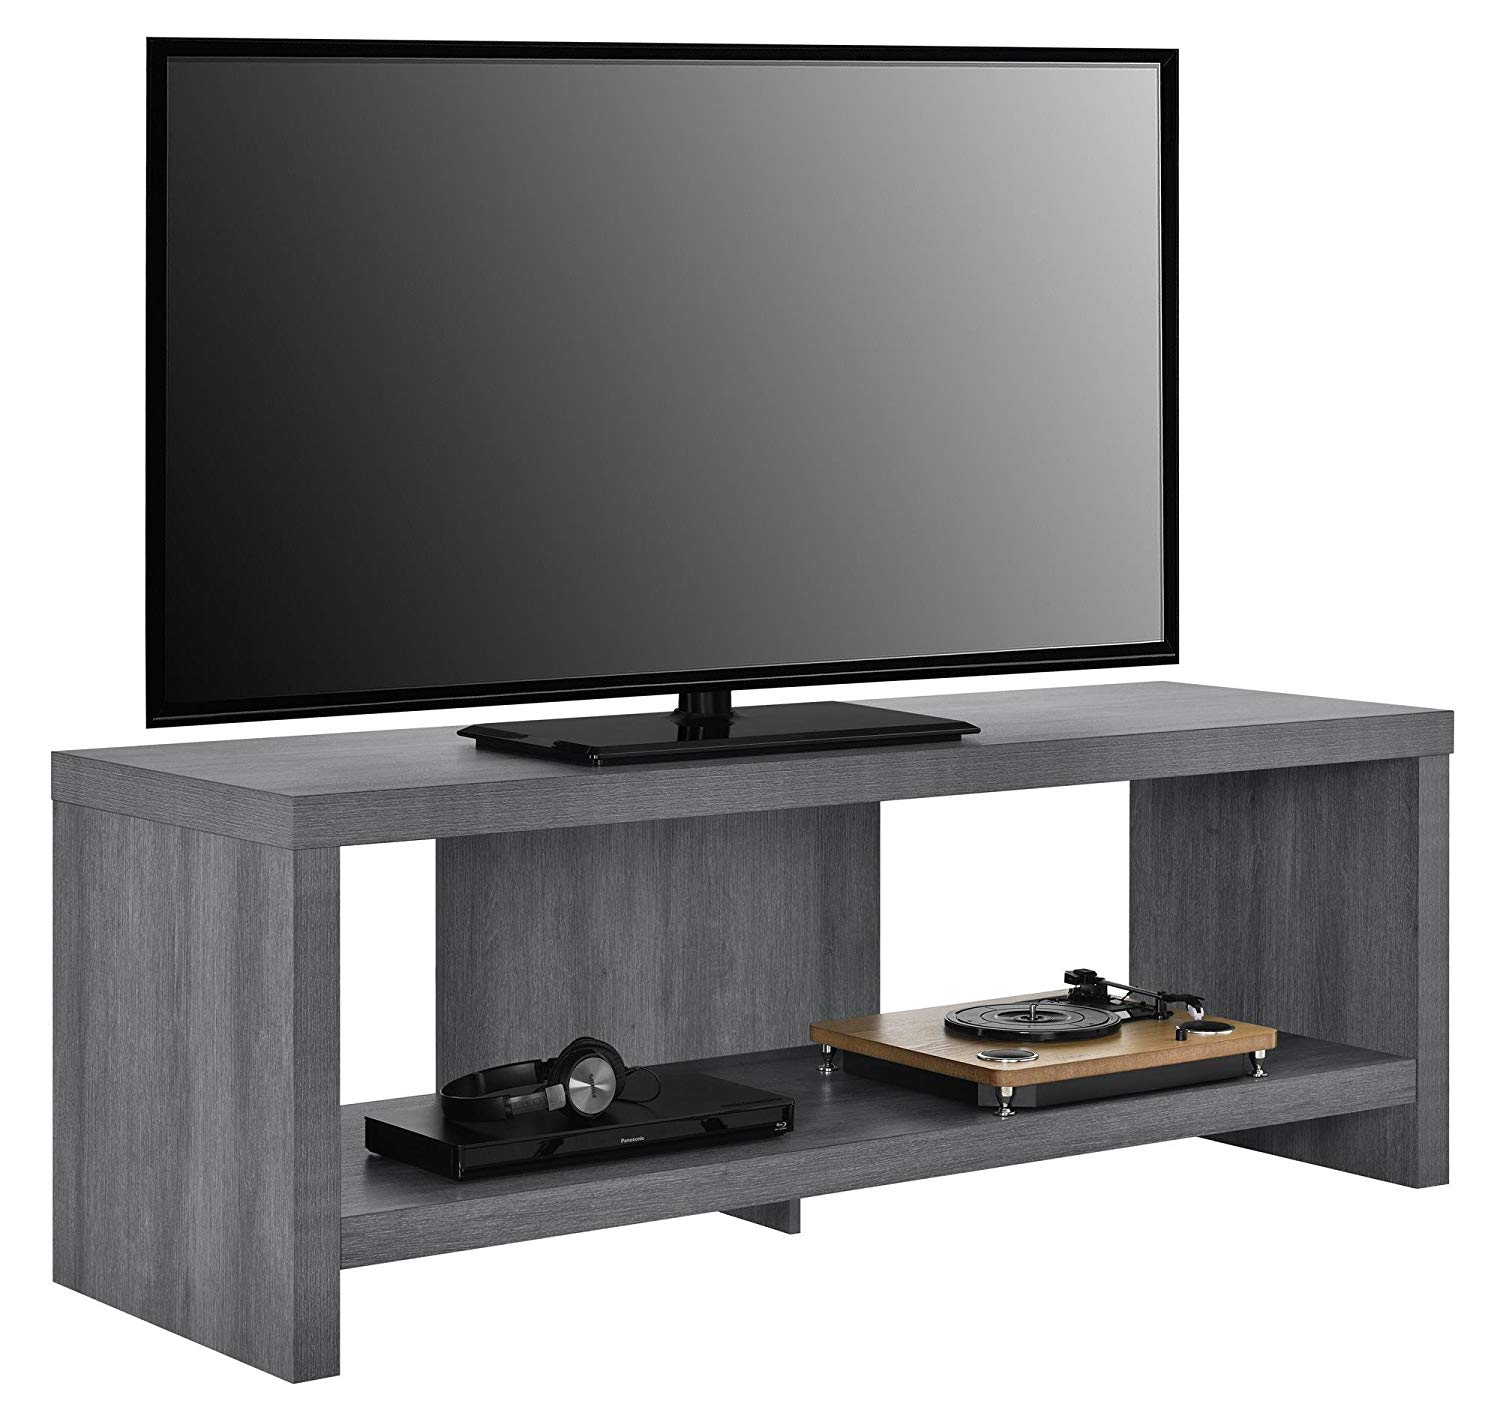 Cheap 60 Oak Tv Stand Find 60 Oak Tv Stand Deals On Line At Alibaba Com